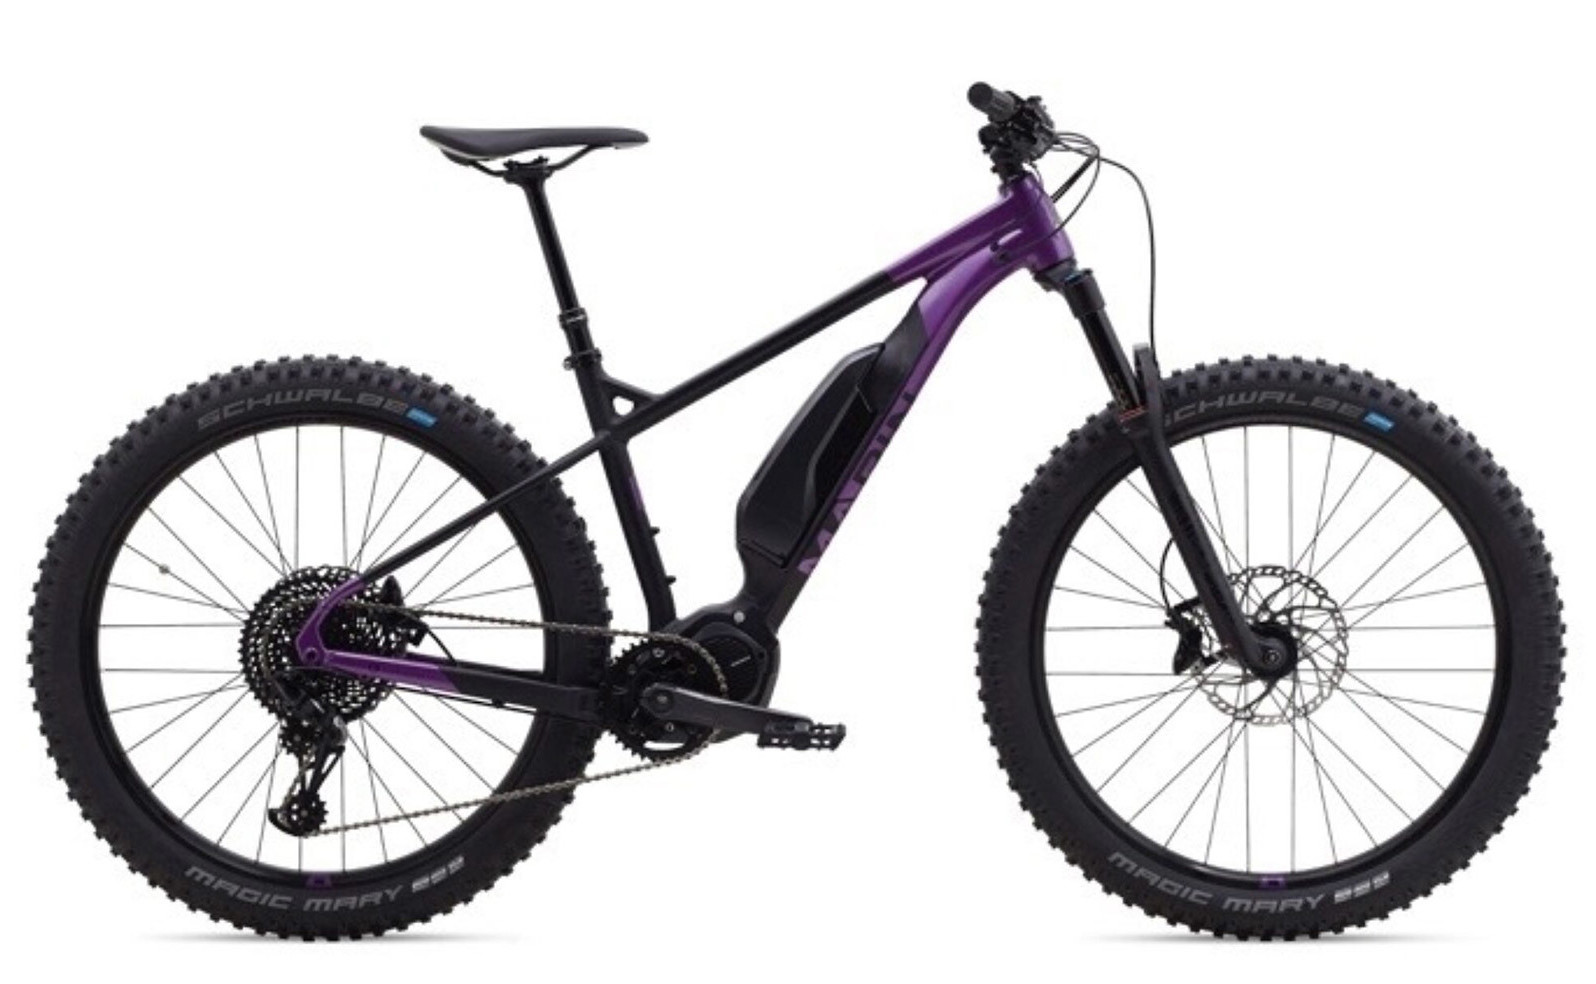 2019 Marin Nail Trail E2 E-Bike